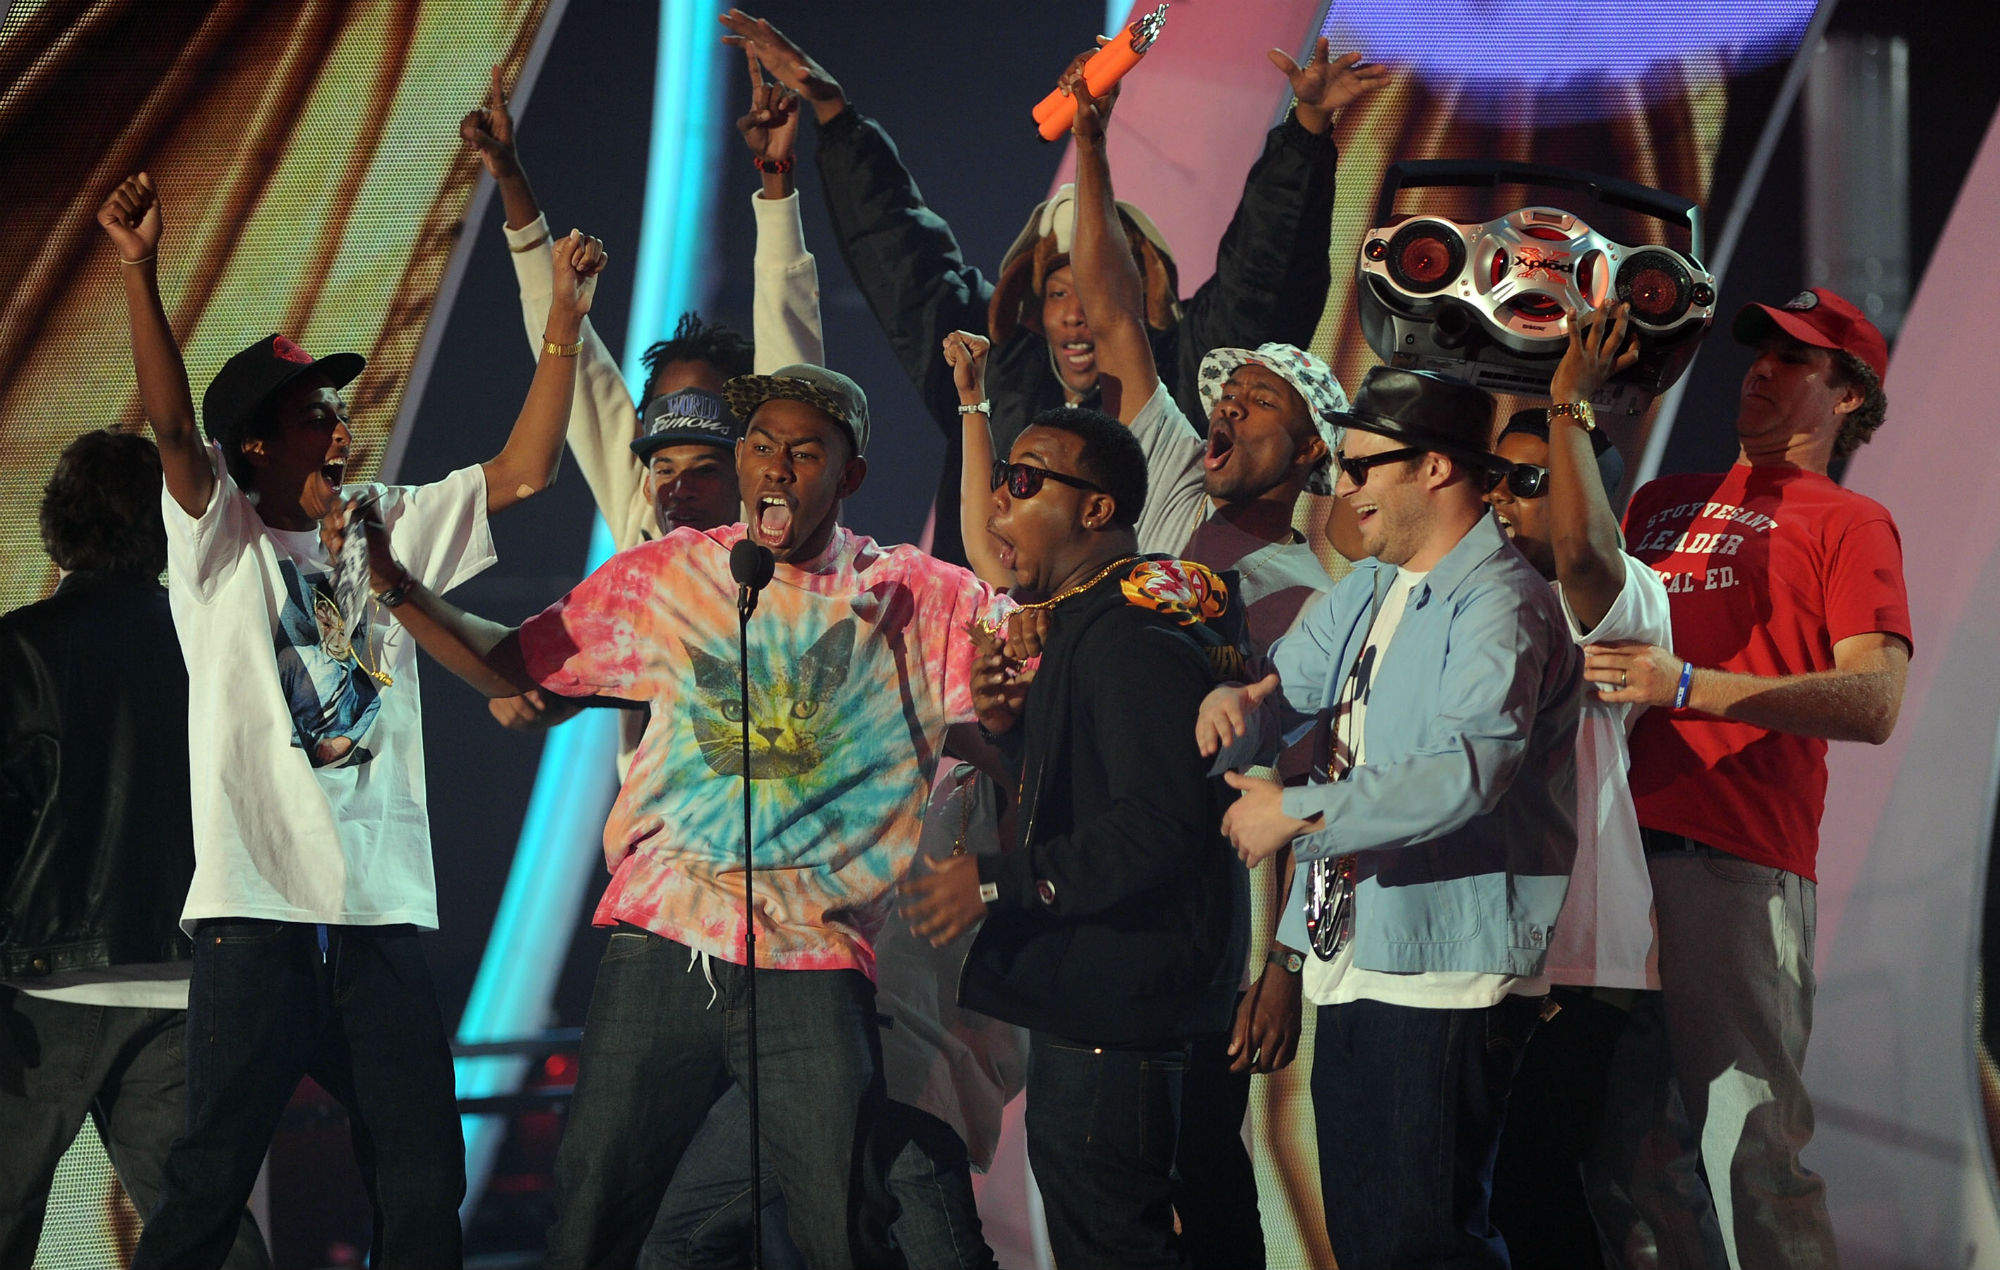 Tyler, The Creator opens up on possibility of Odd Future reunion | NME